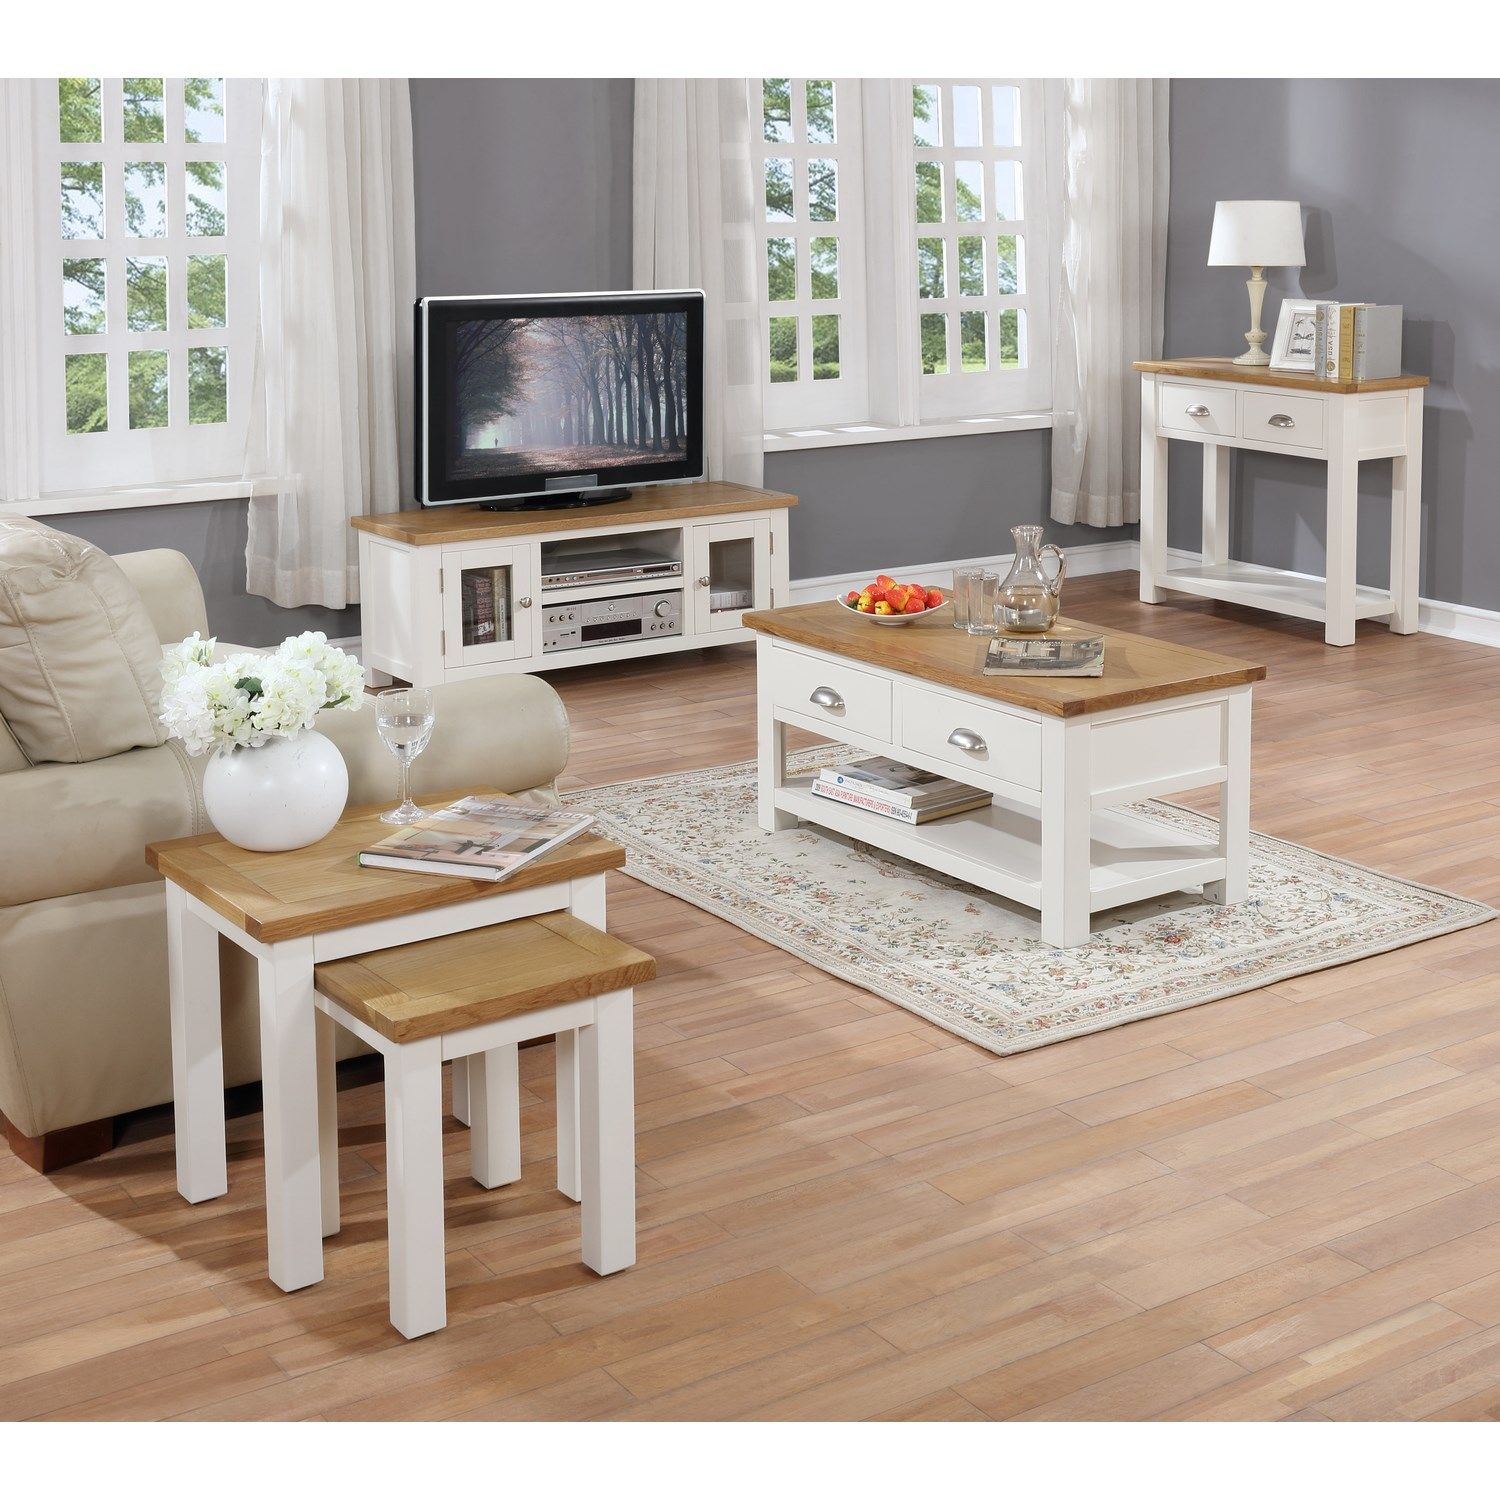 The Willow Cream And Oak Collection White Furniture Living Room Coffee Table Living Room Furniture #two #coffee #tables #living #room